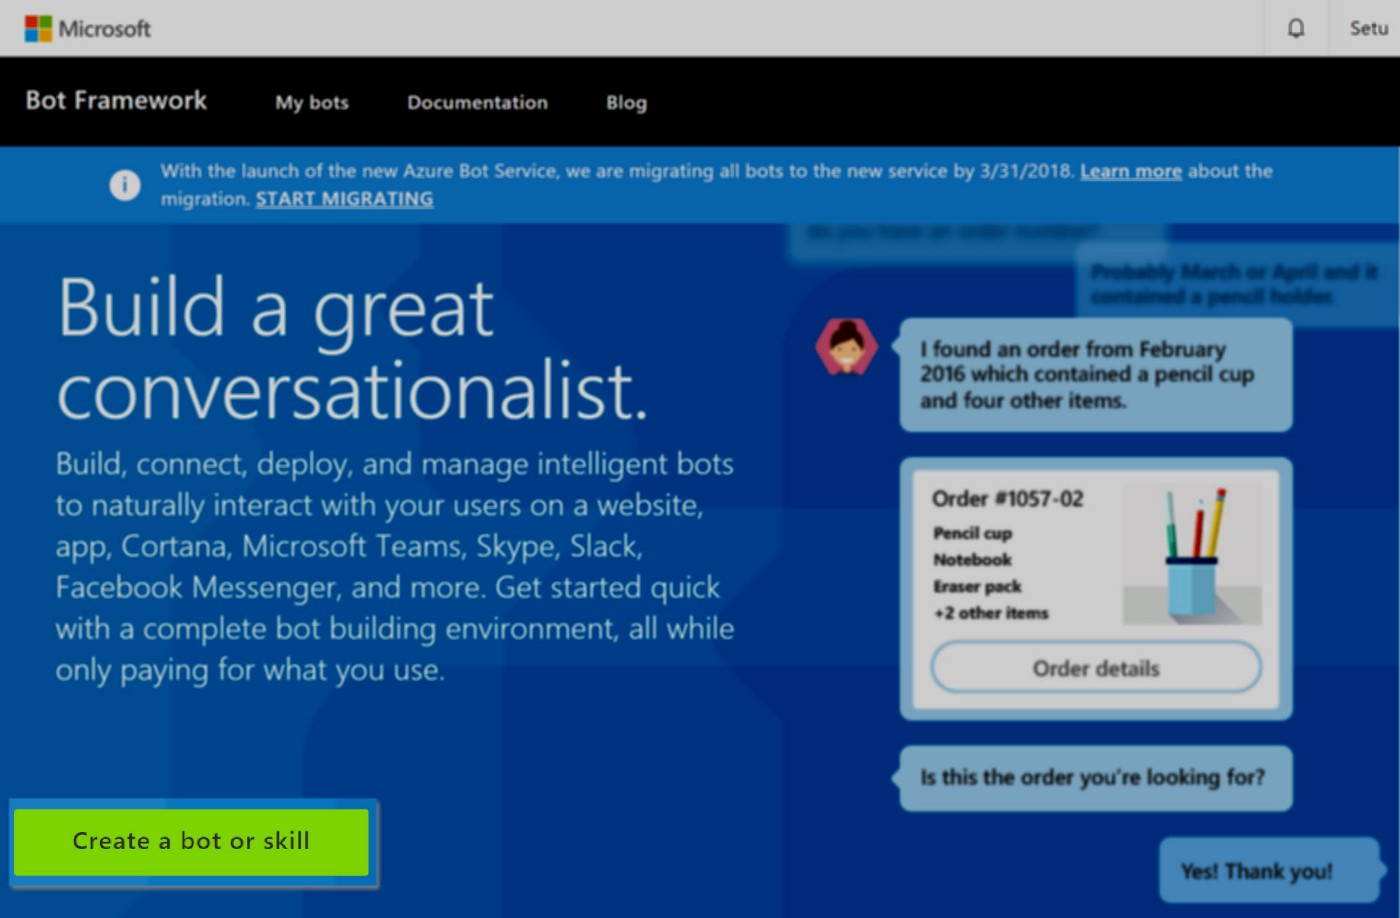 Getting started with Azure Bot Framework: Building and publishing